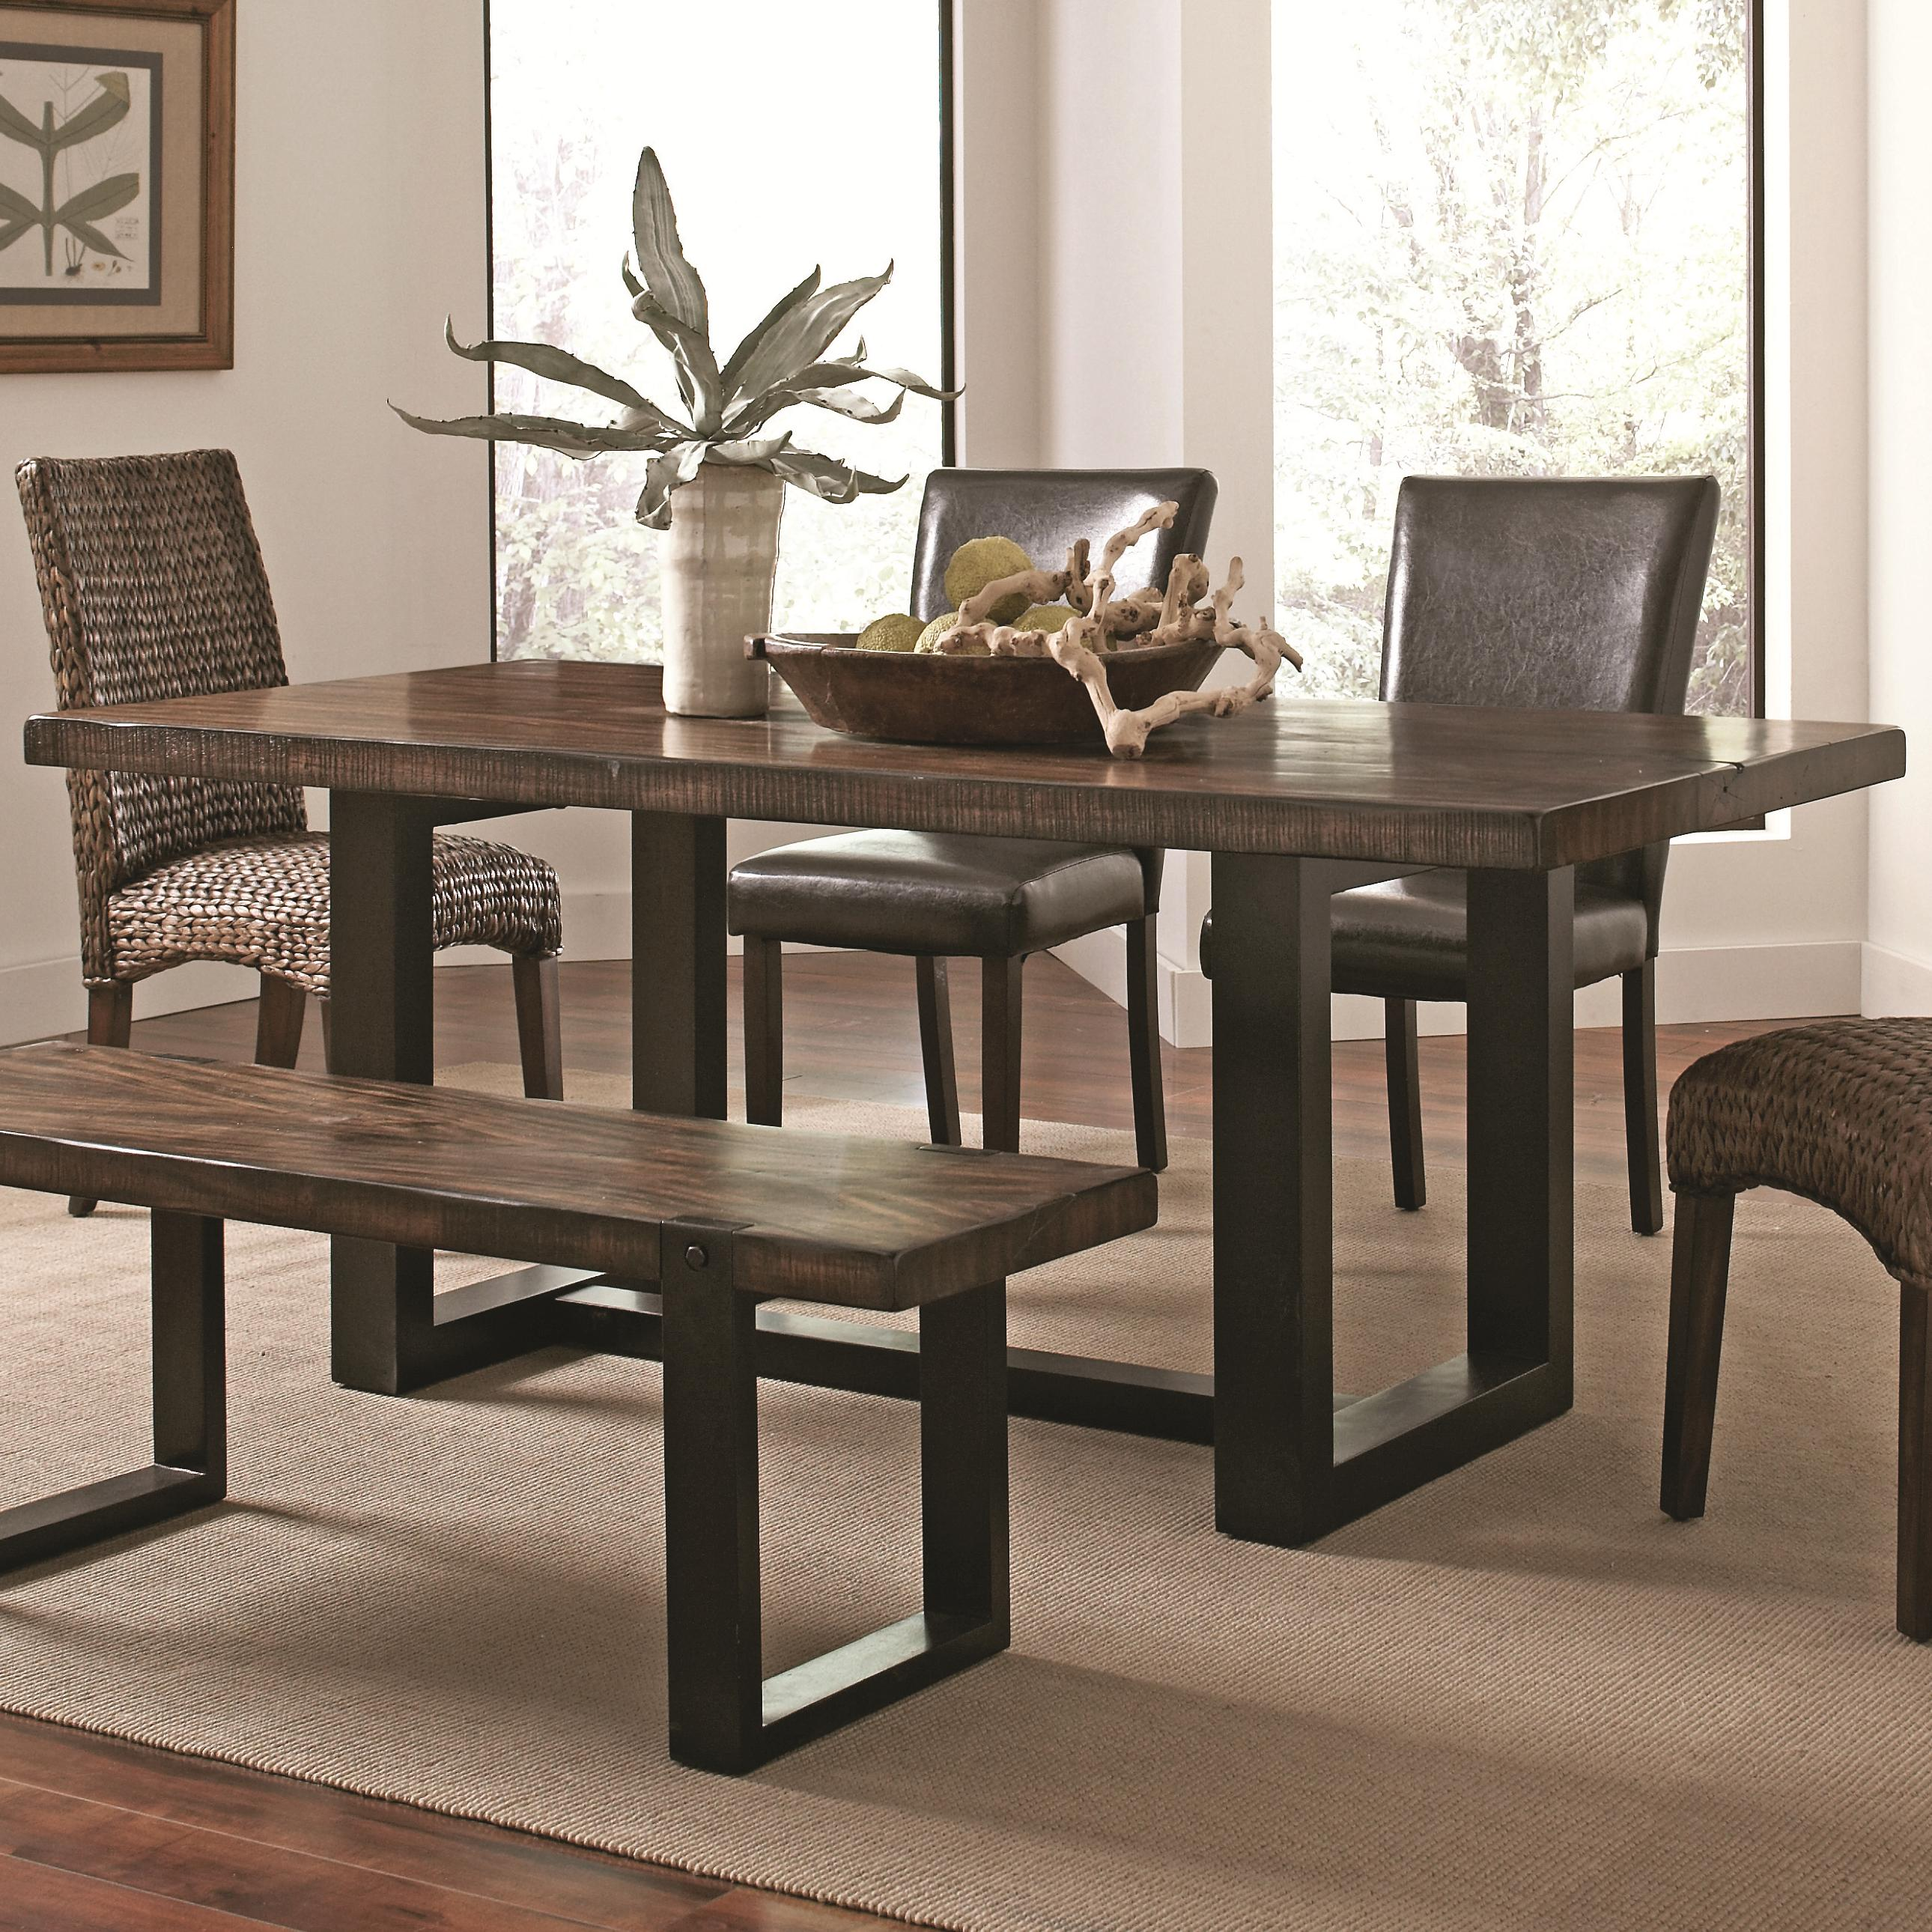 Coaster Furniture Westbrook Dining Table The Cly